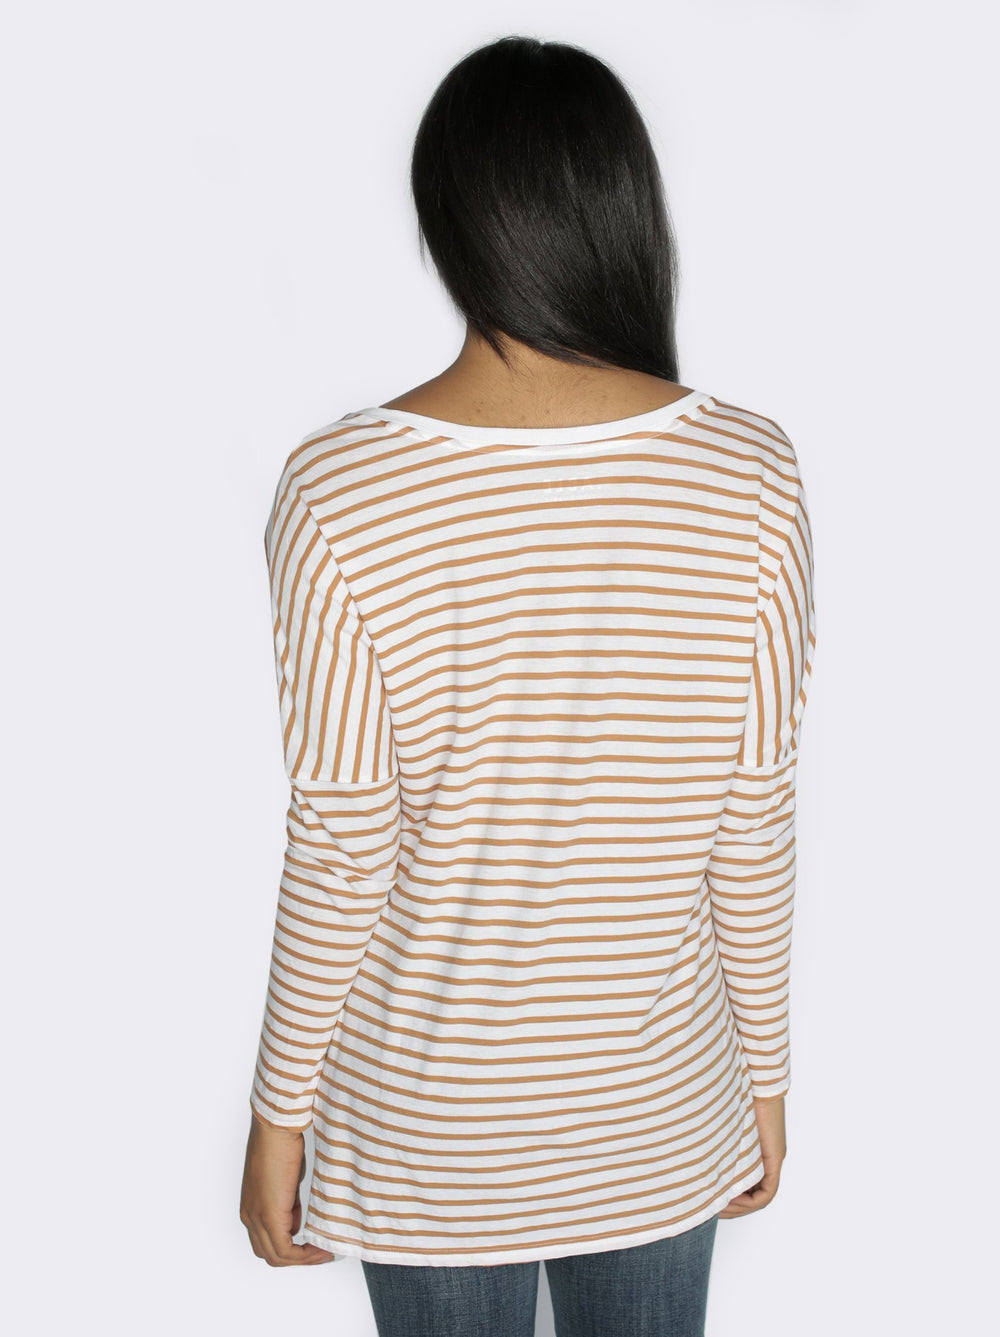 Lifestyle - White and Camel Stripe